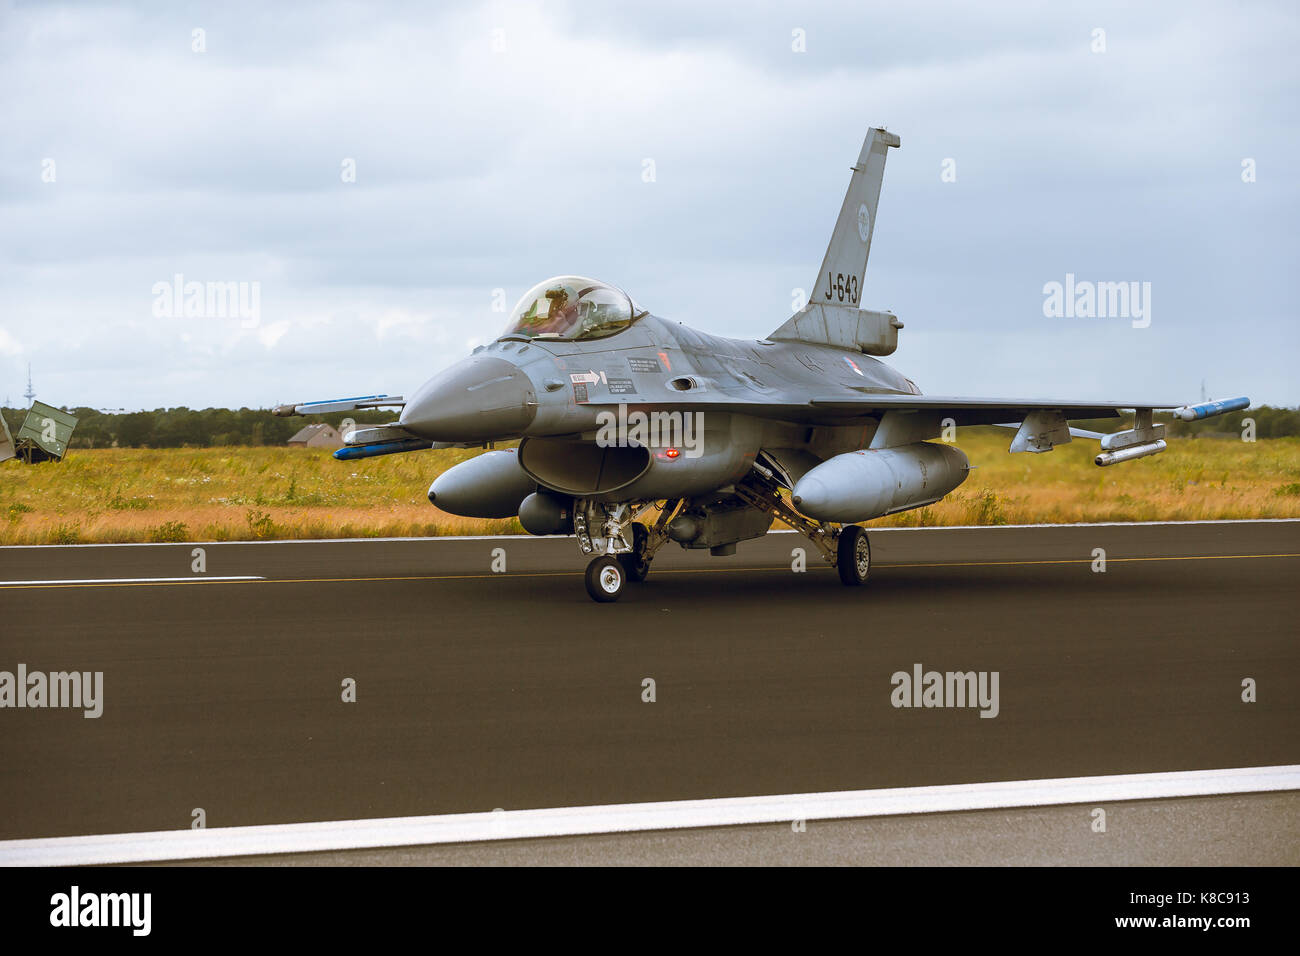 General Dynamics F-16A Fighting Falcon  at NTM2014 - Stock Image